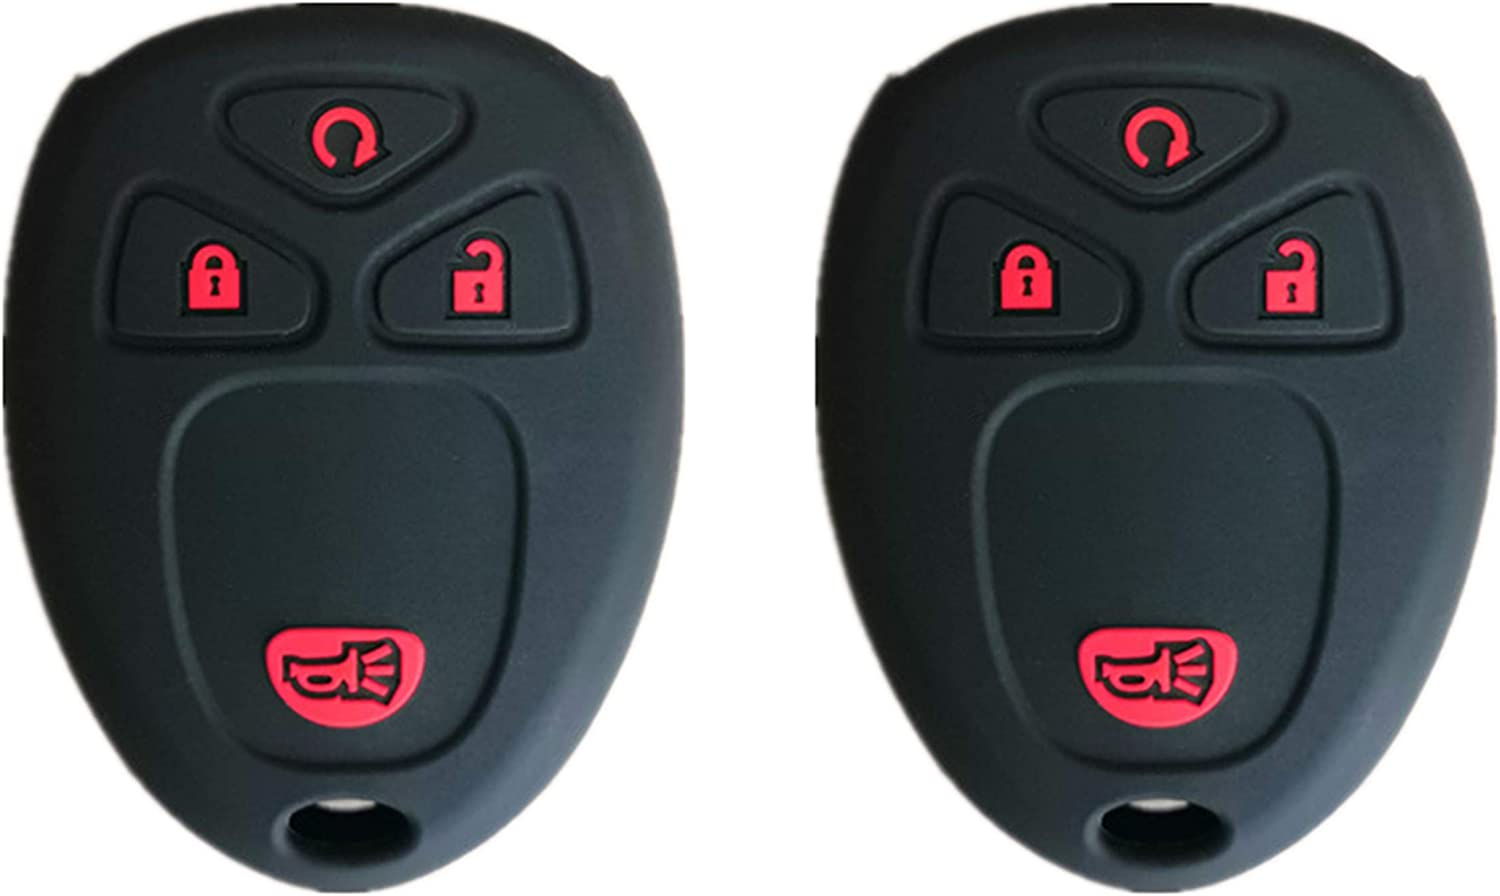 KAWIHEN SiliconeProtector CoverFit for Buick Cadillac Chevrolet Chevy CMC Pontiac Saturn 5 Buttons key fob KOBGT04A 22733524 10305091 10305092 OUC60270 OUC60221 15913415 15857839